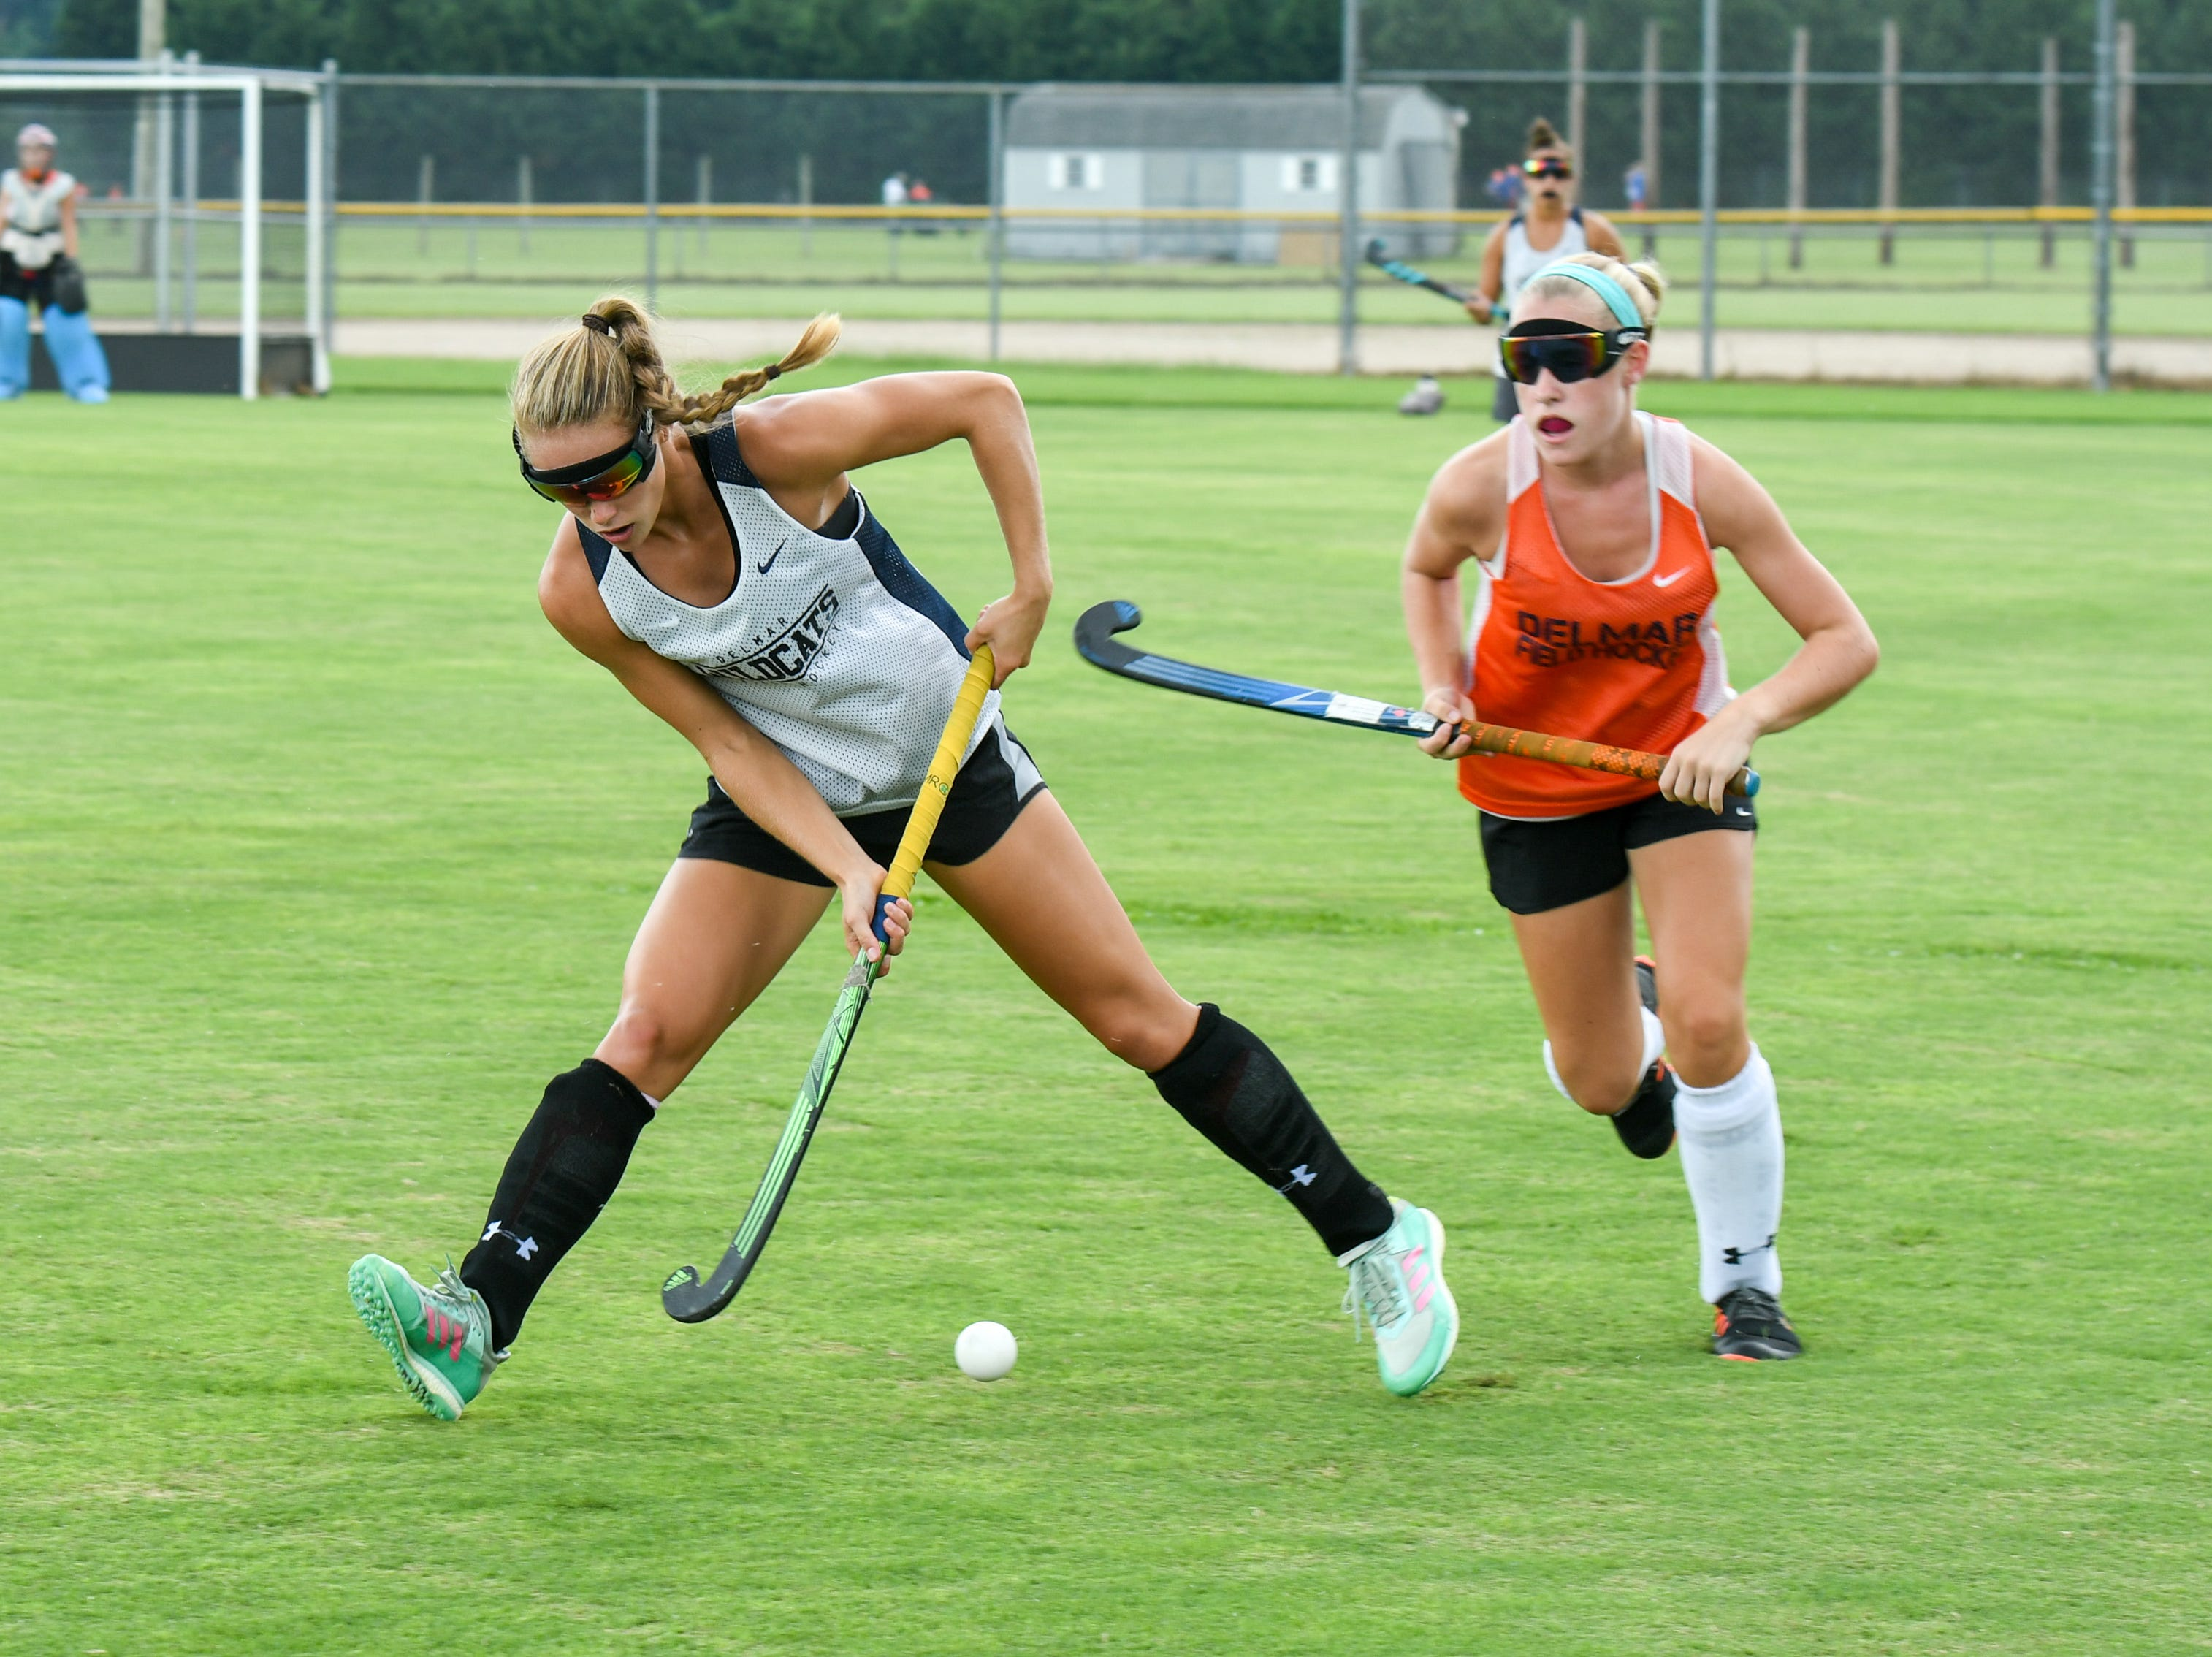 Senior Ashlyn Carr (left) hits the ball during a scrimmage at Delmar field hockey practice on Wednesday, Sept. 5.